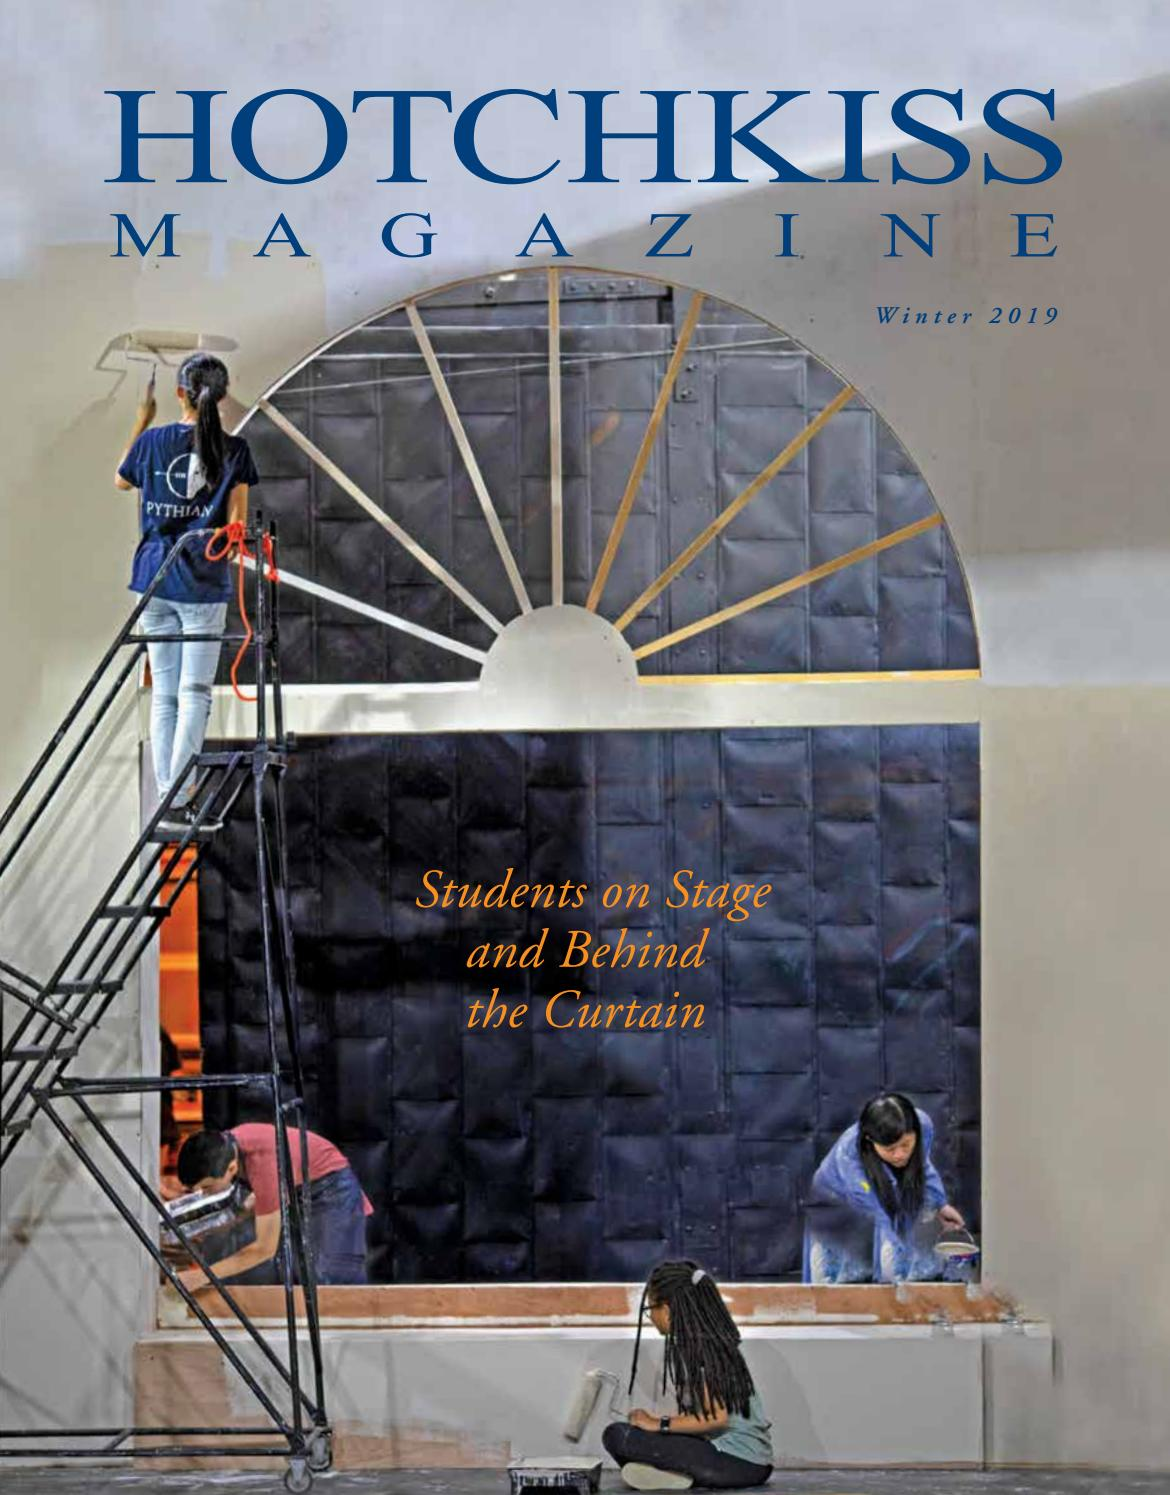 Hotchkiss Magazine Winter 2019 Issue By The Hotchkiss School Issuu